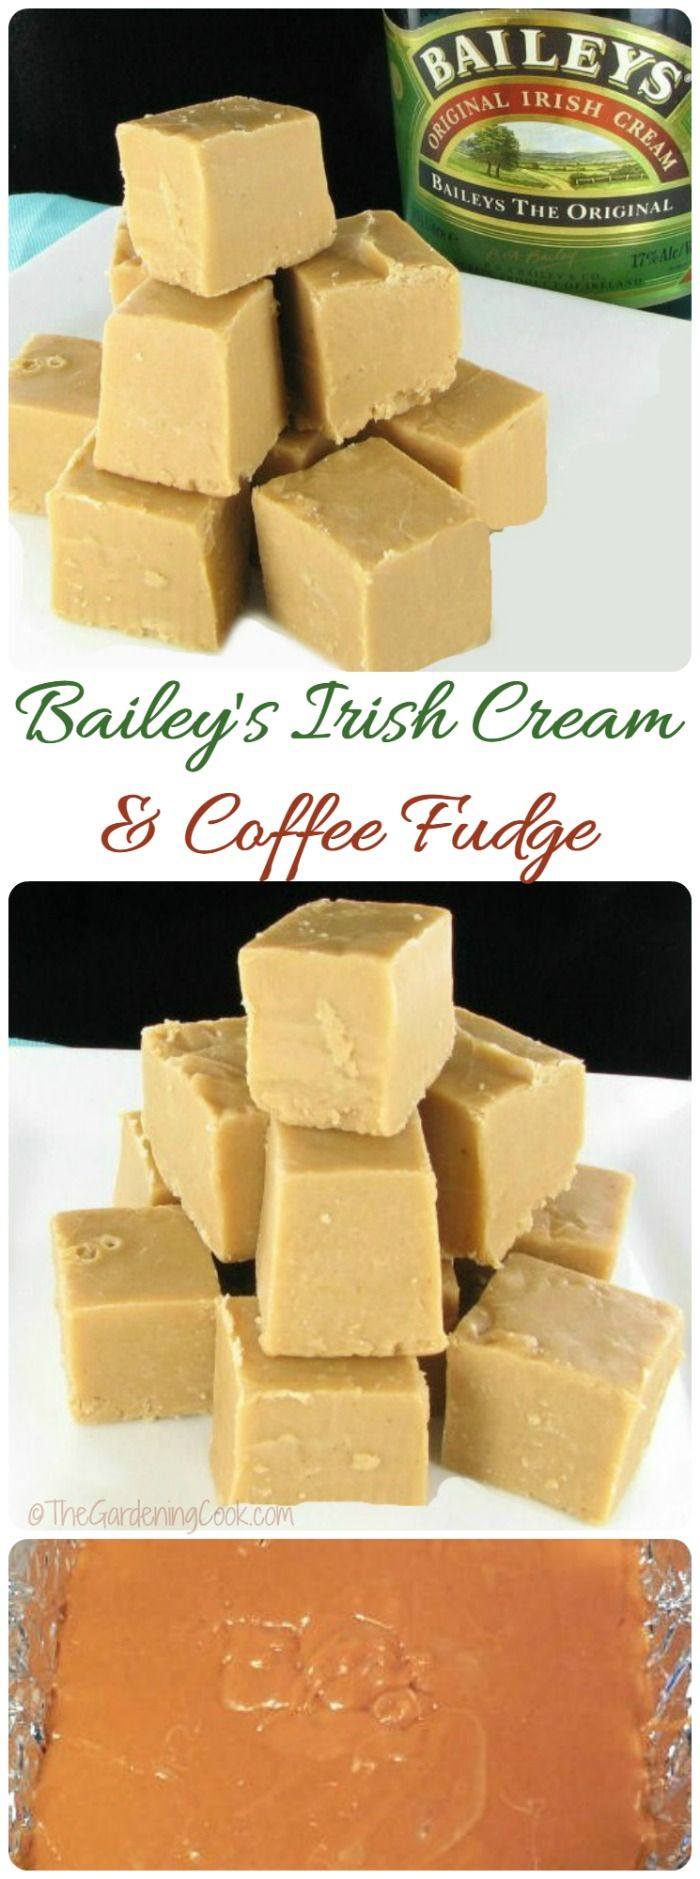 282b3cc0d3804c4f958333c868f203fa How To Make Irish Coffee With Milk Baileys Irish Cream Fudge Always The Holidays